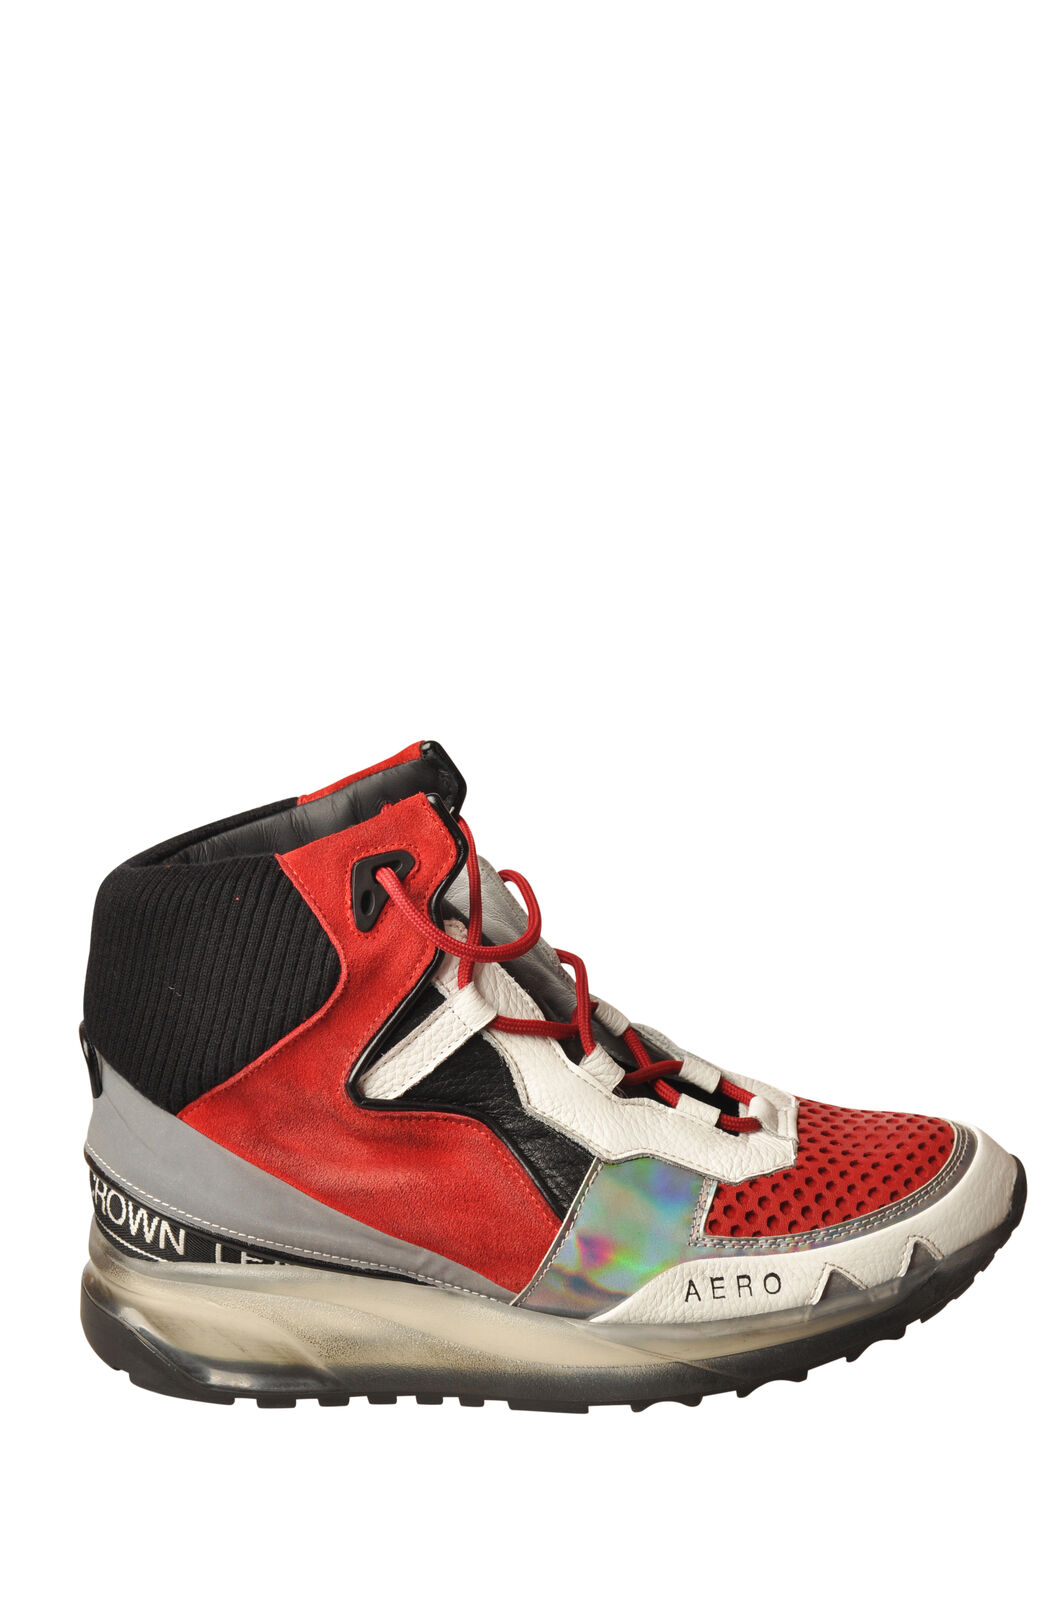 Leather Crown - shoes-Sneakers - Woman - Red - 5859405A194043